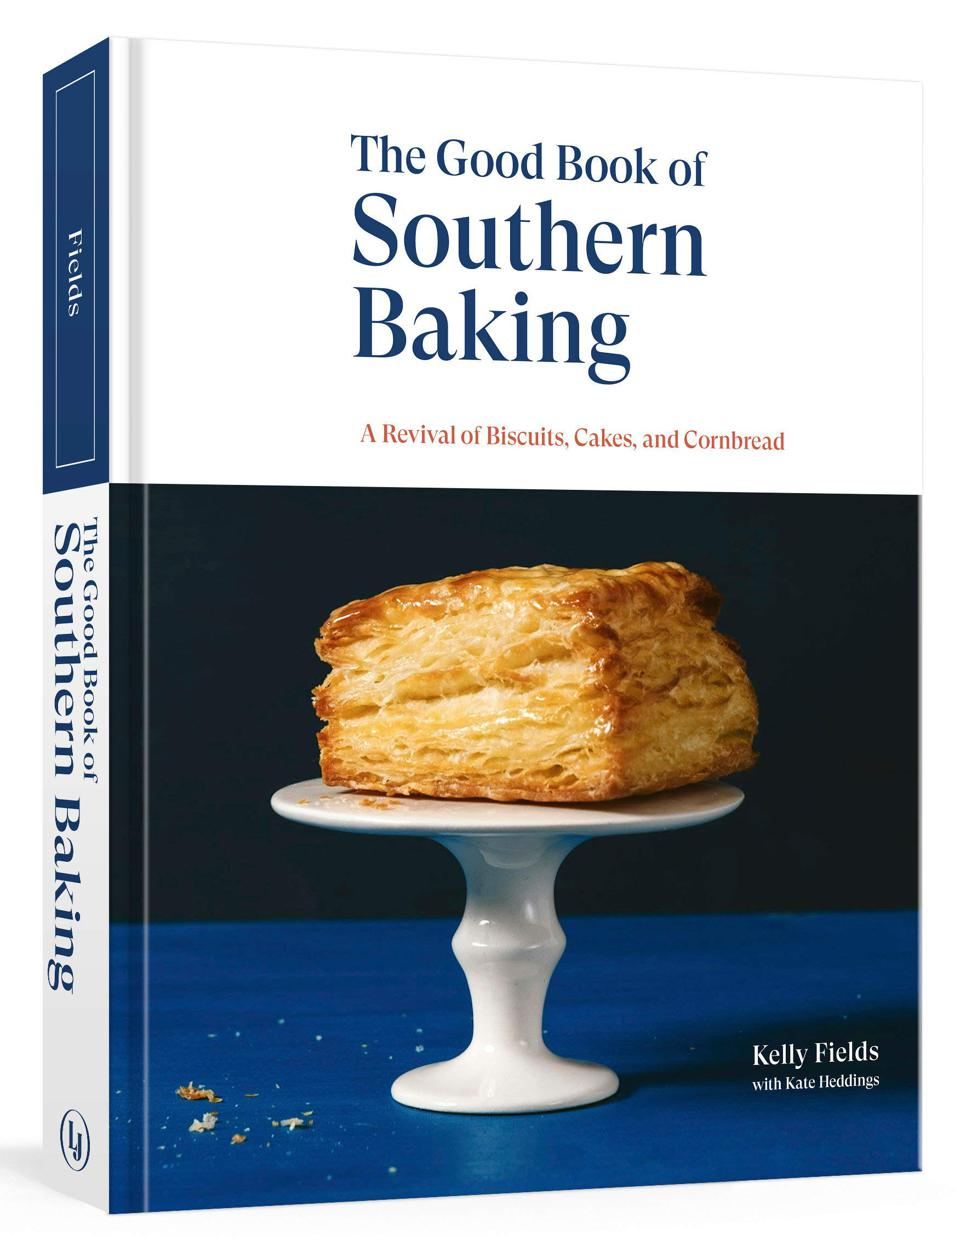 The Good Book of Southern Baking, Kelly Fields and Kate Heddings